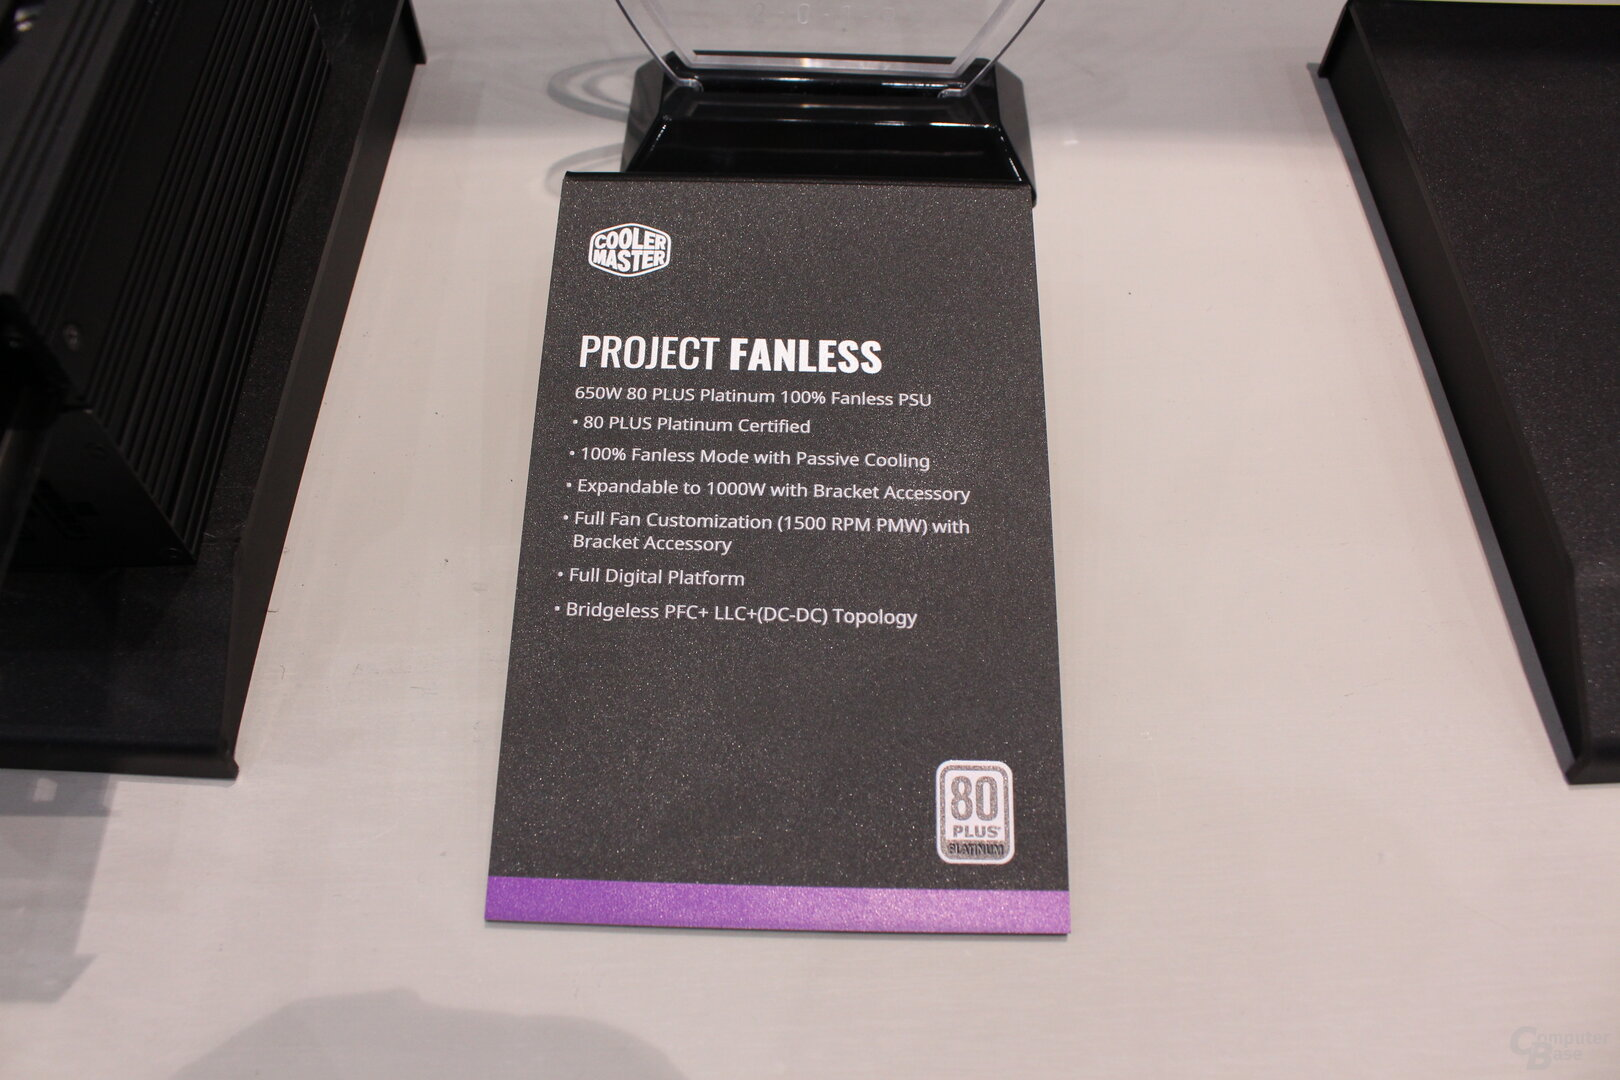 Cooler Master Project Fanless